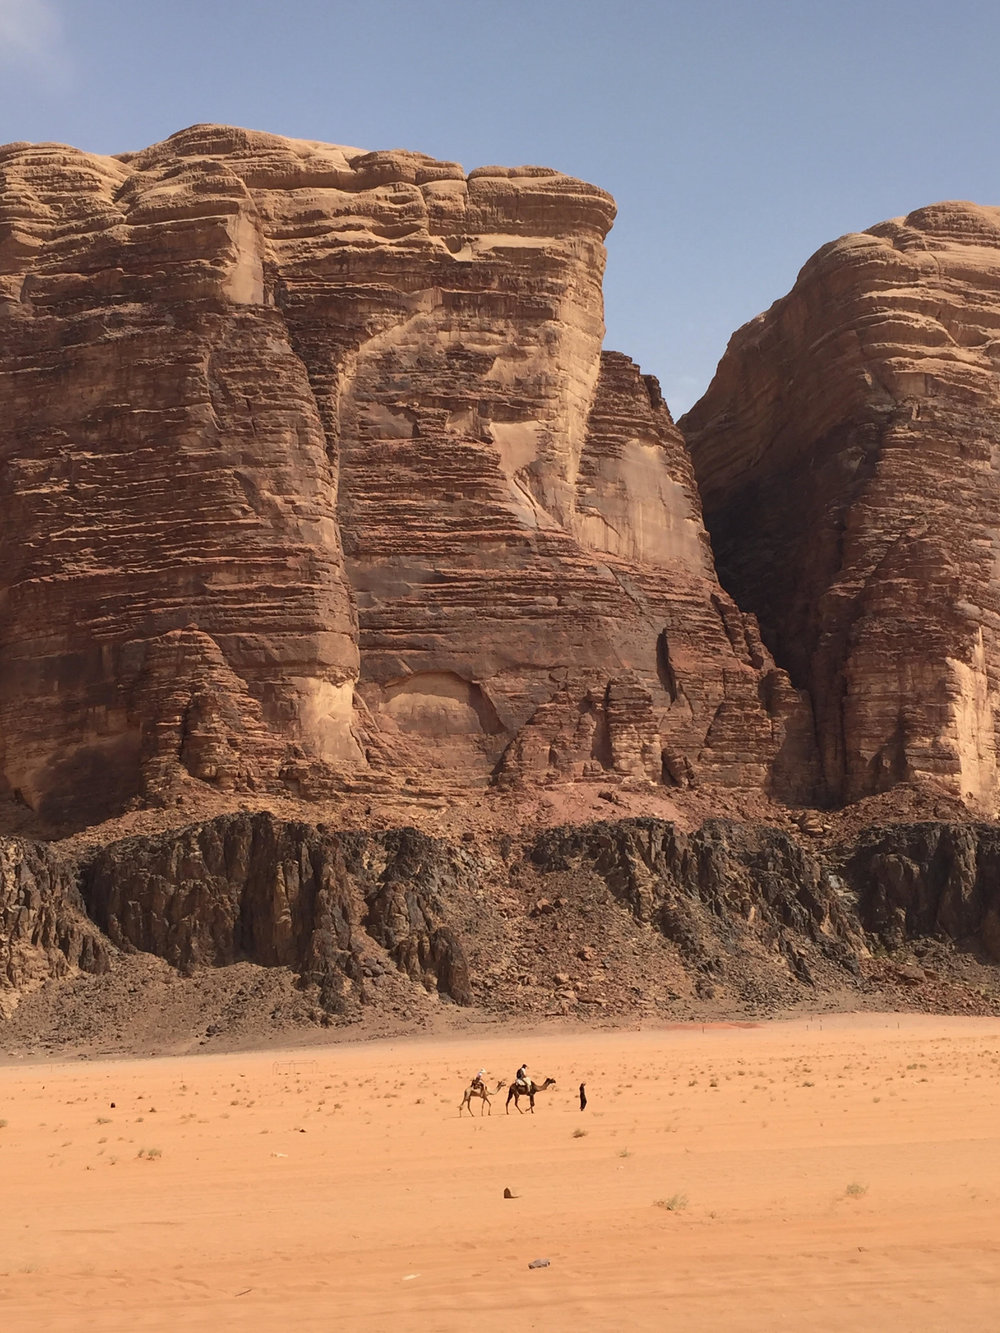 Travelling by Camel in the Wadi Rum Desert. Photo taken by Jurick Wessels,  @jurickwessels on Instagram .